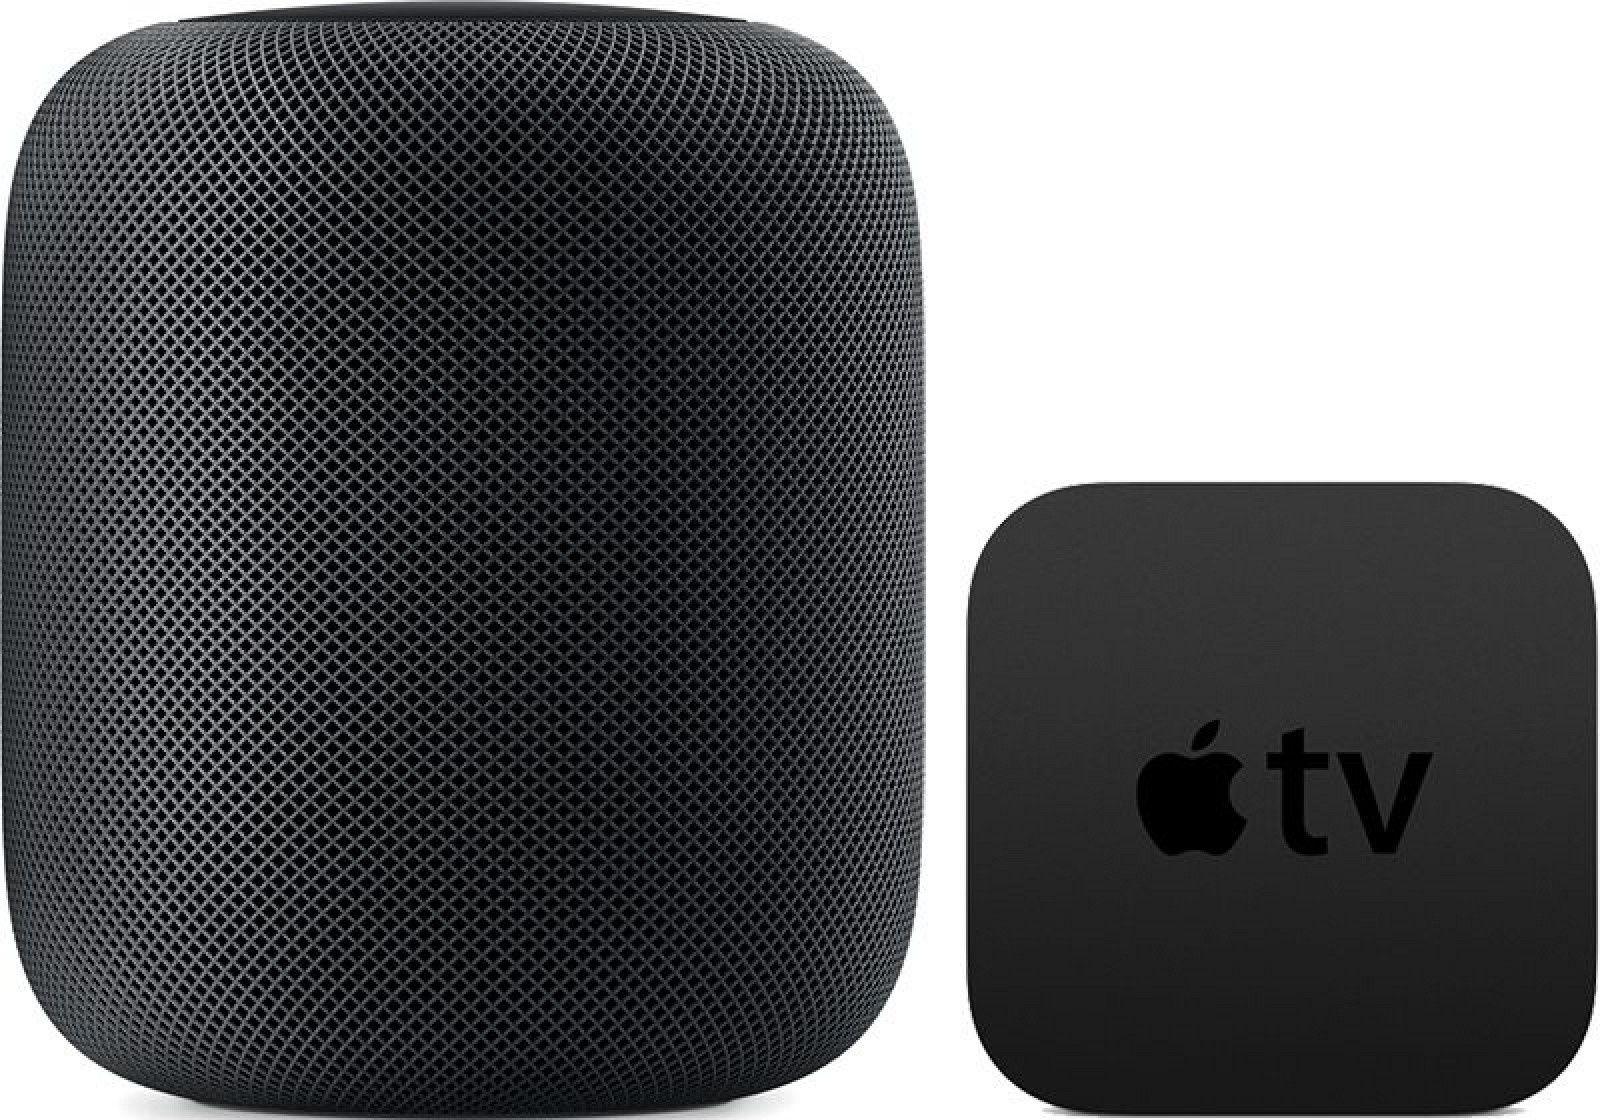 How To Use Your Homepod As A Speaker For Your Apple Tv Mac Rumors